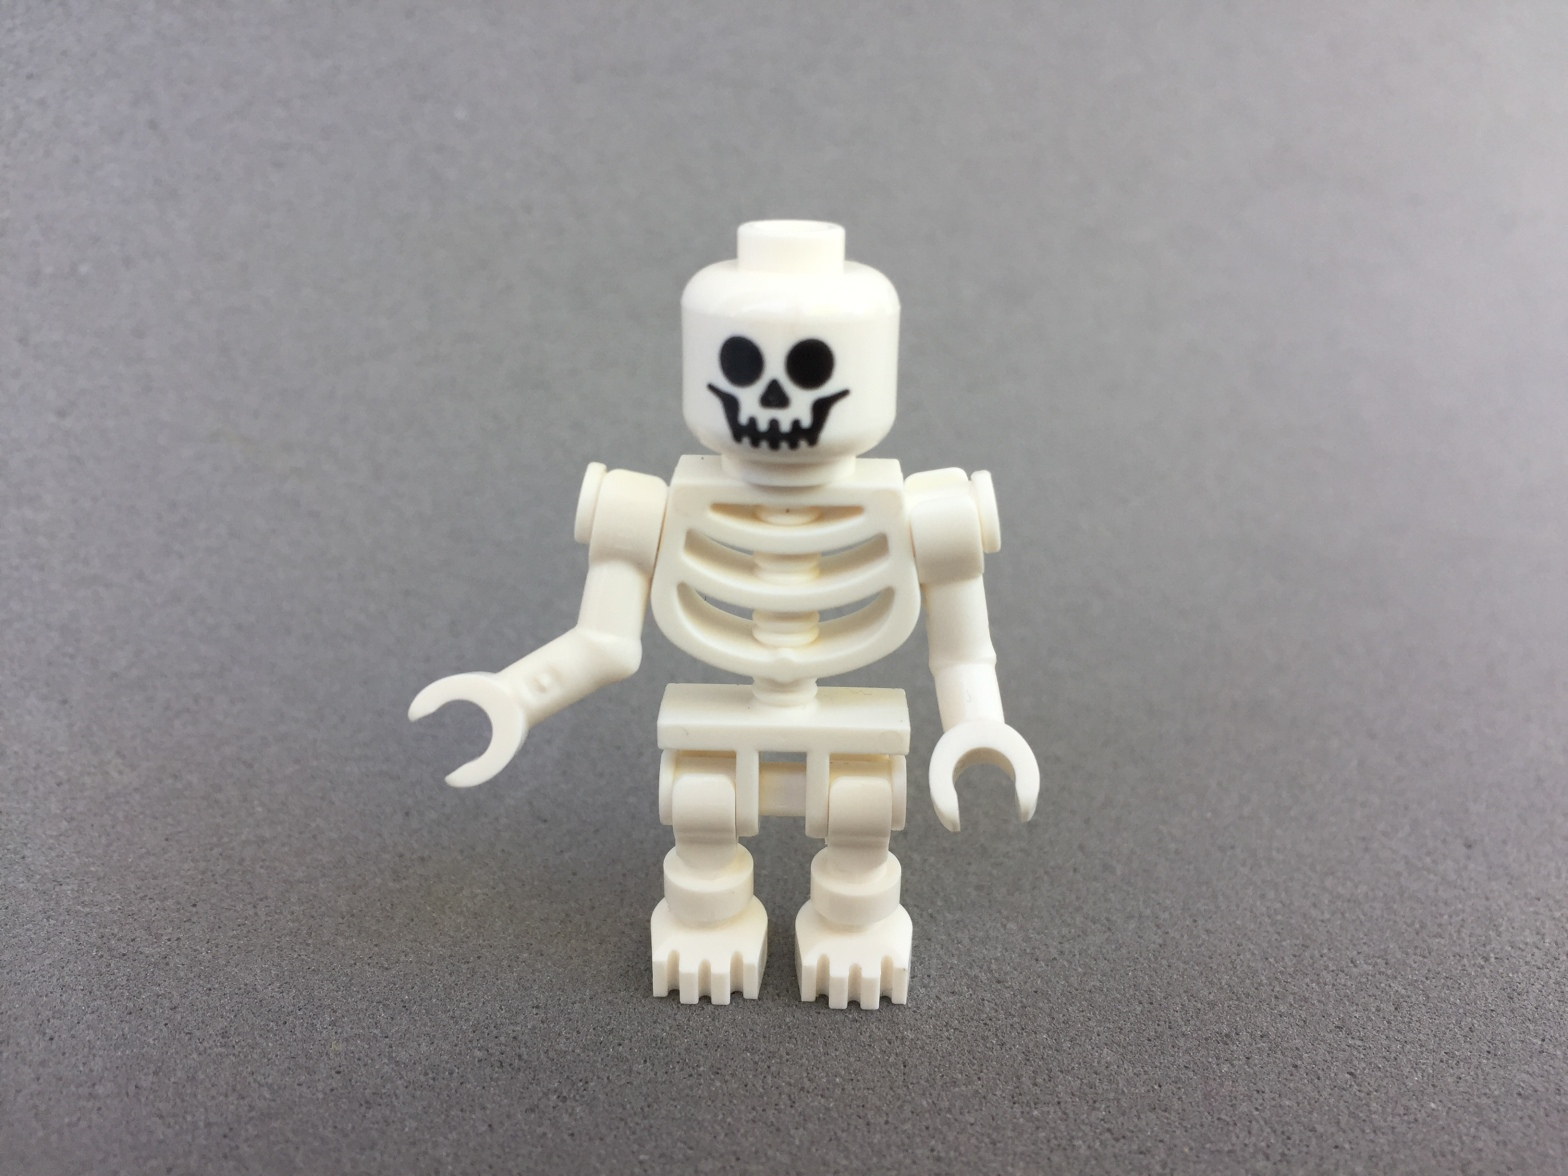 A Lego skeleton guy